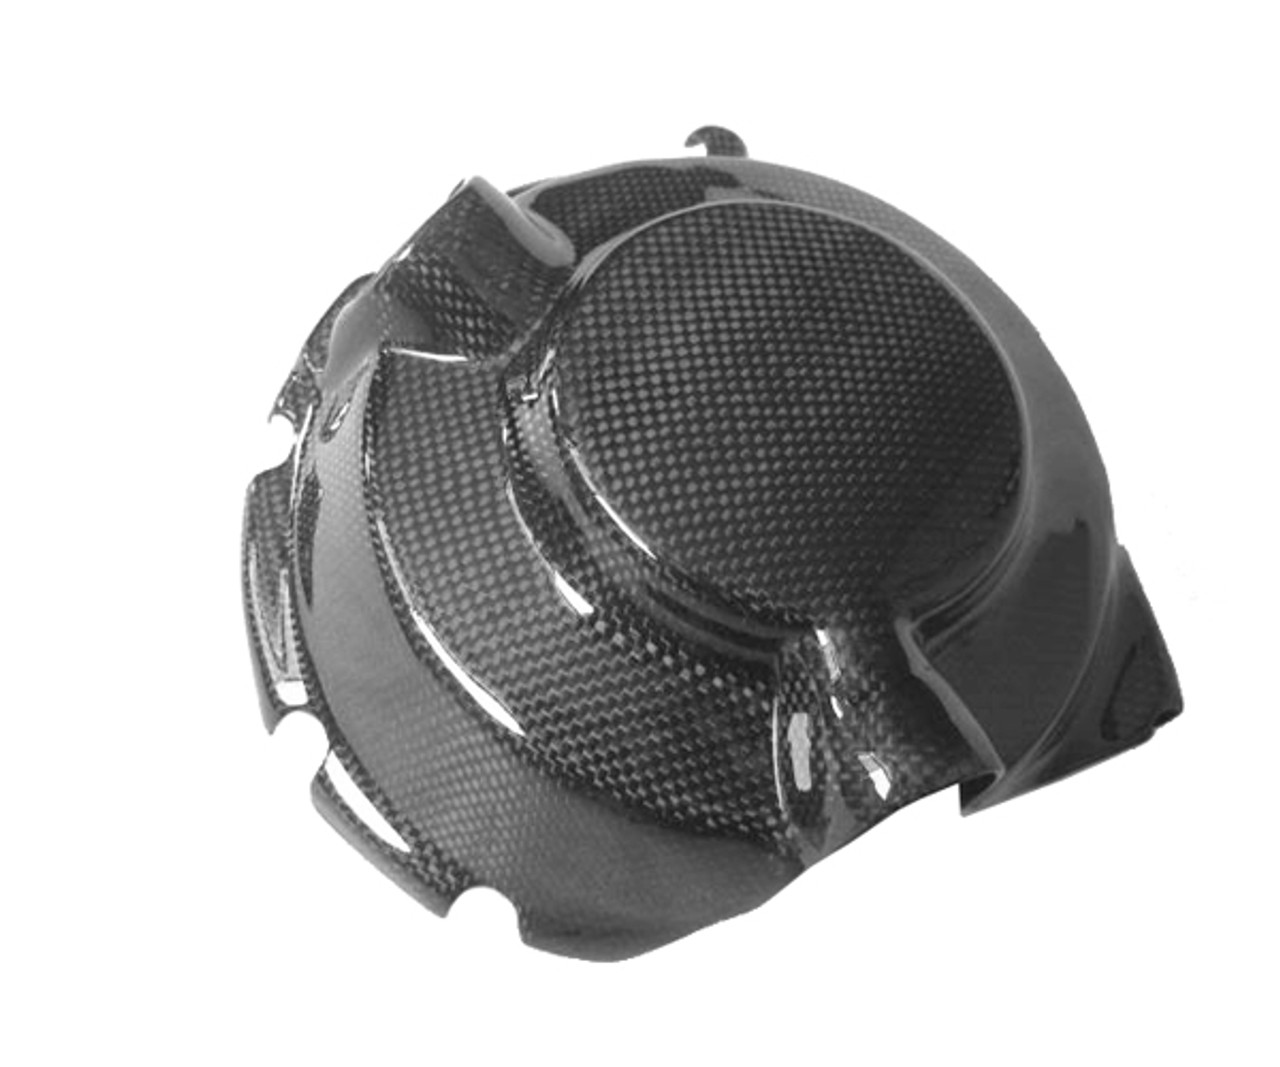 Clutch Cover Guard in Glossy Plain Weave Carbon Fiber for Yamaha R6 99-02